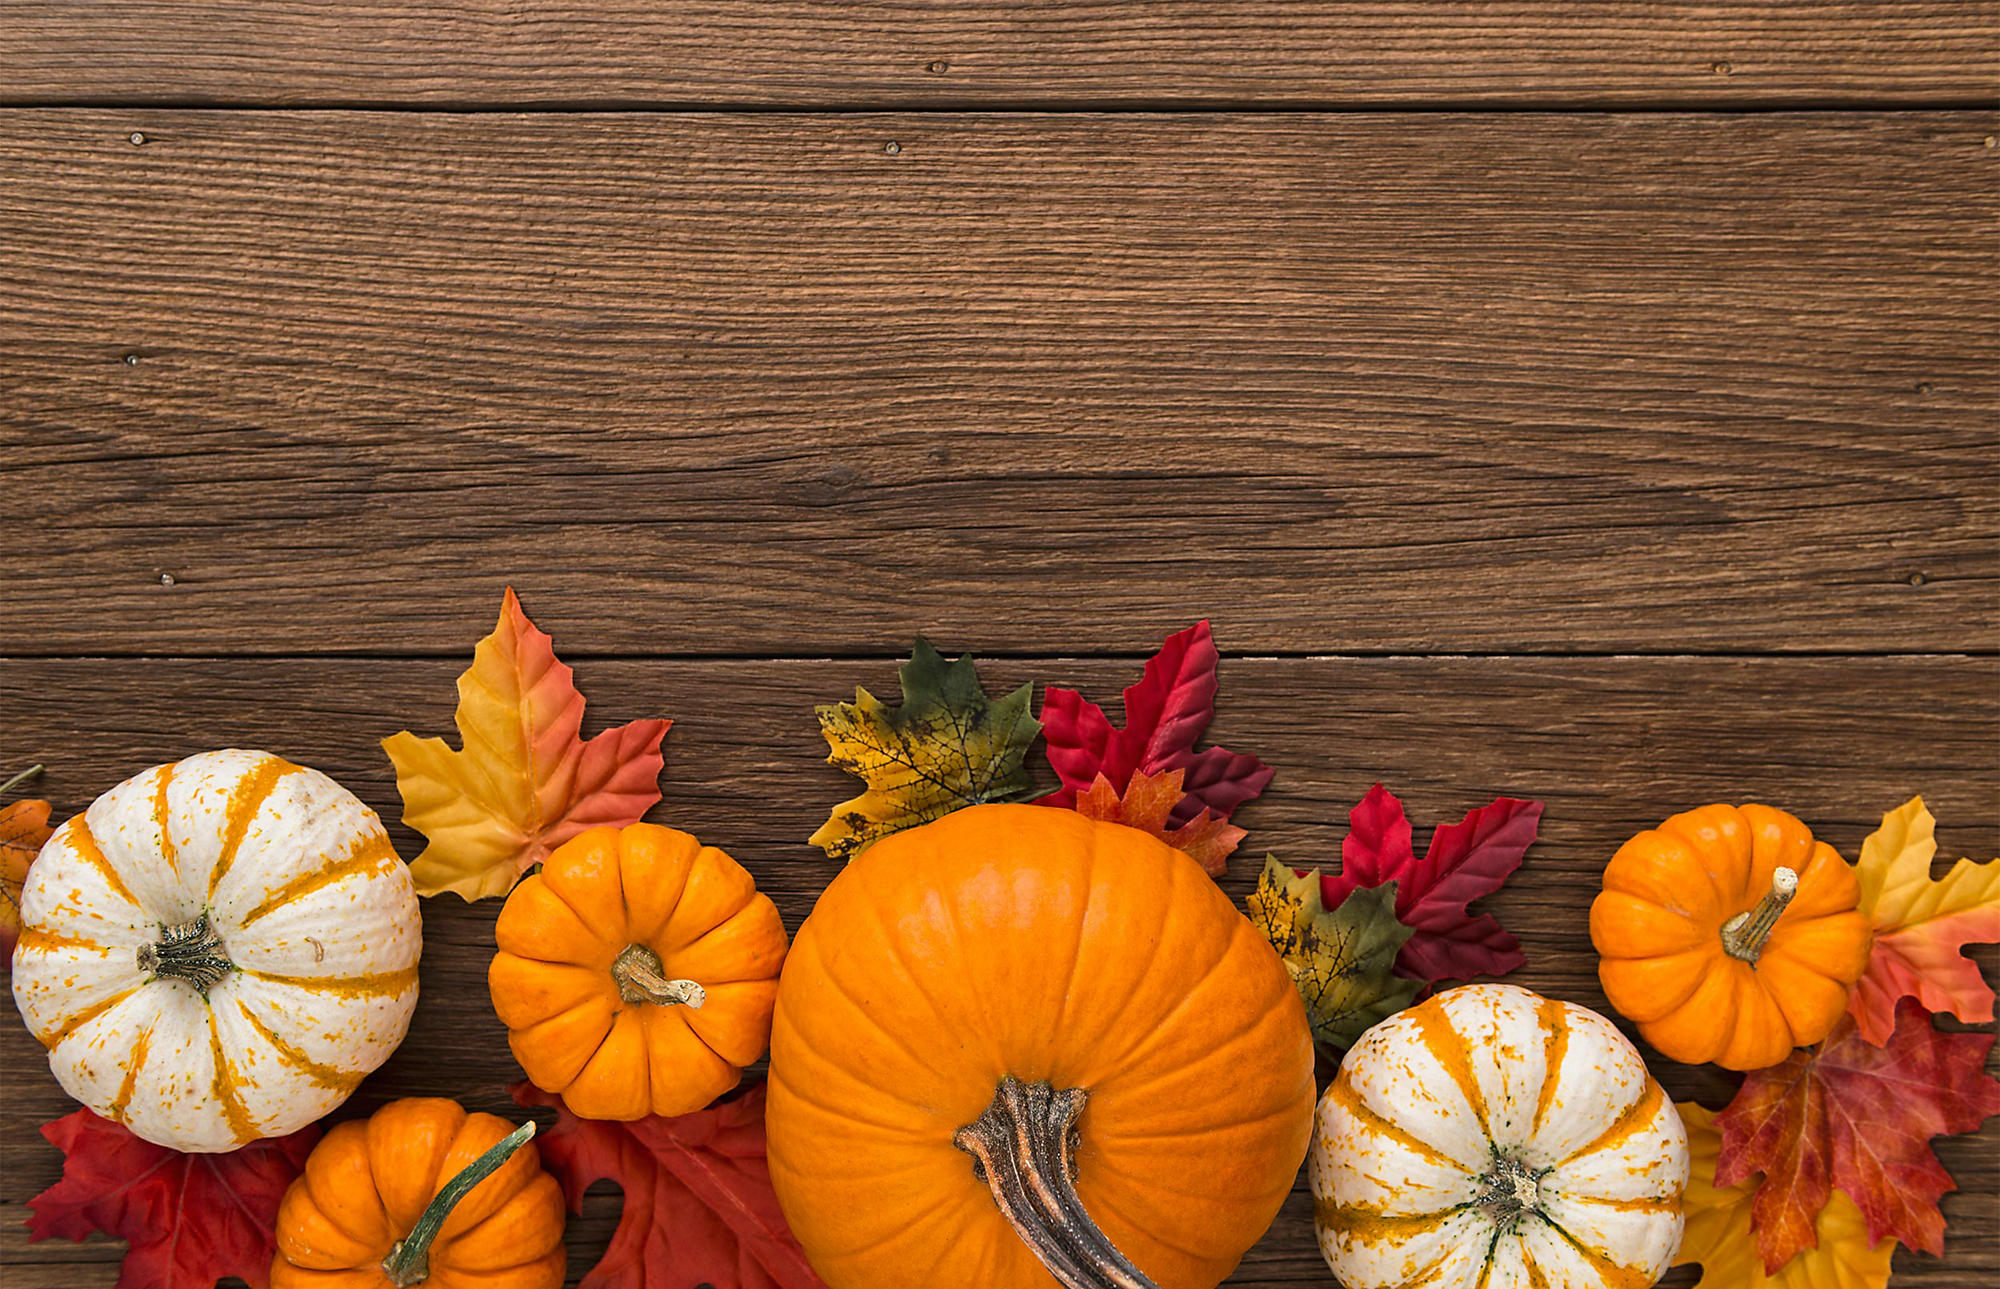 Fall Autumn leaves with pumpkins on desktop